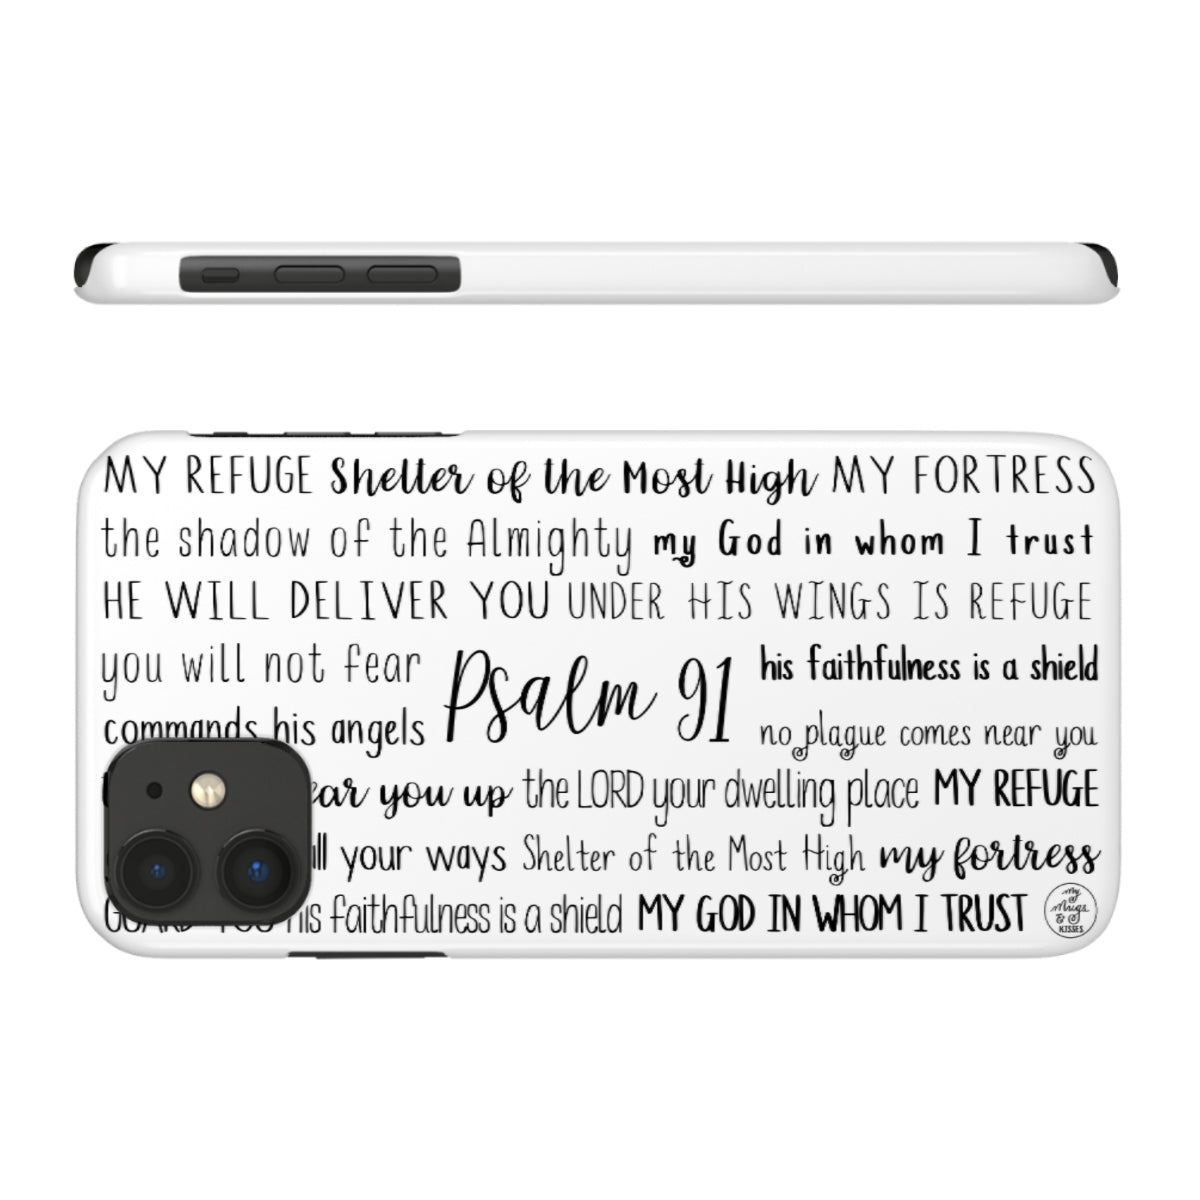 Psalm 91 iPhone Case